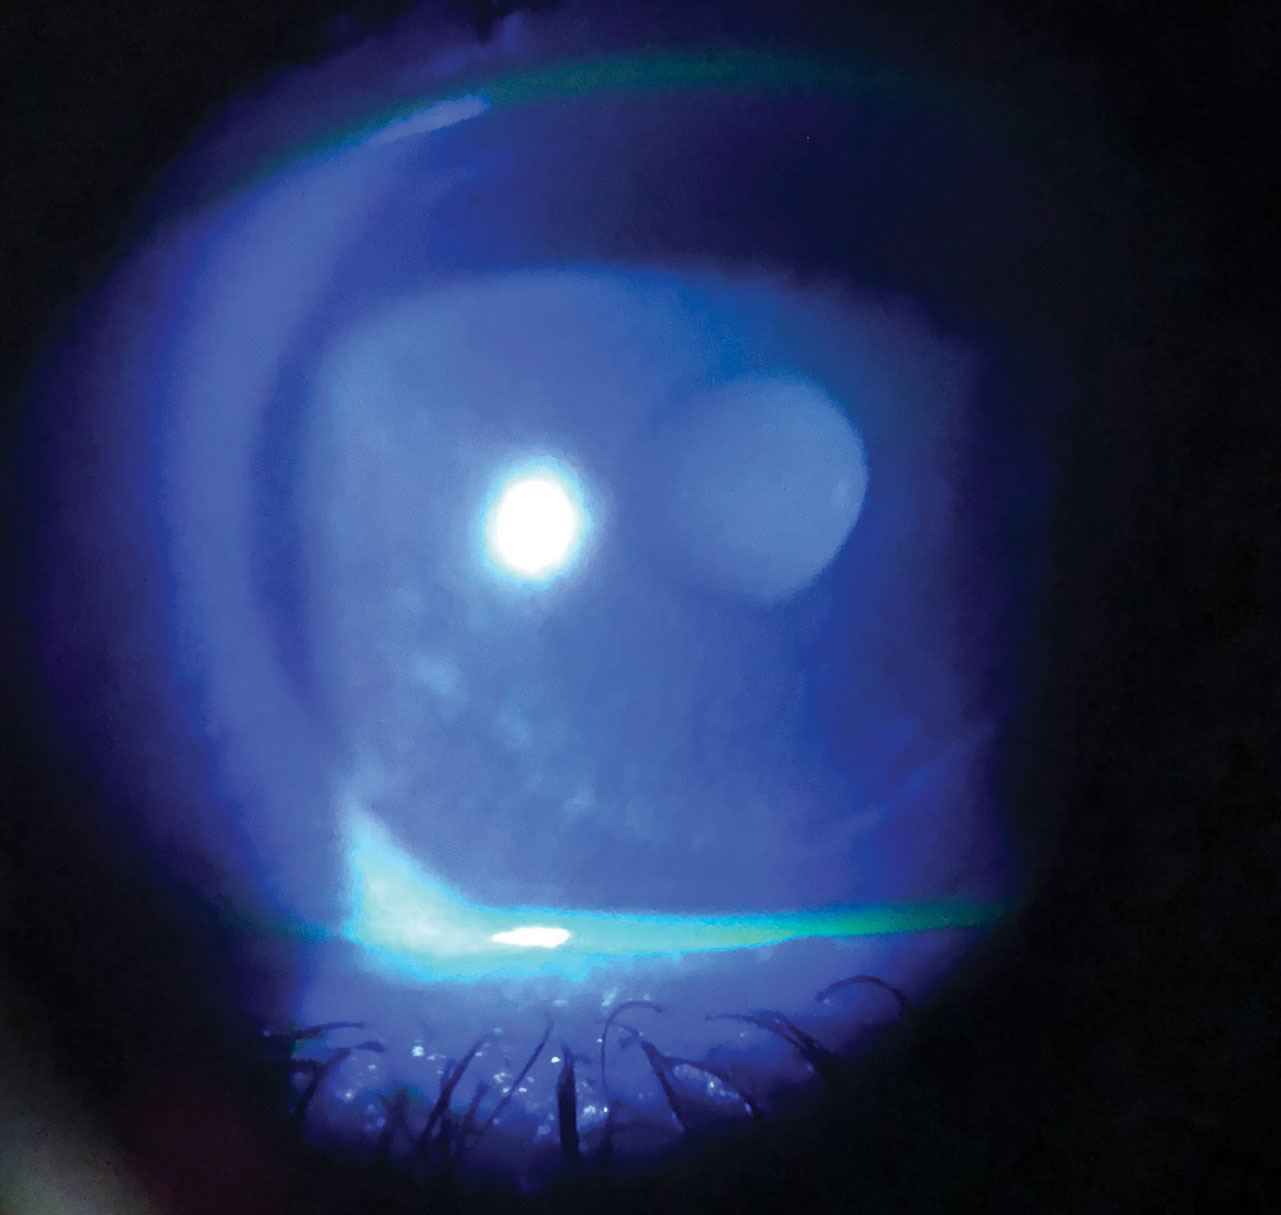 Dry eye in a patient with melanoma taking chemotherapeutic medications.